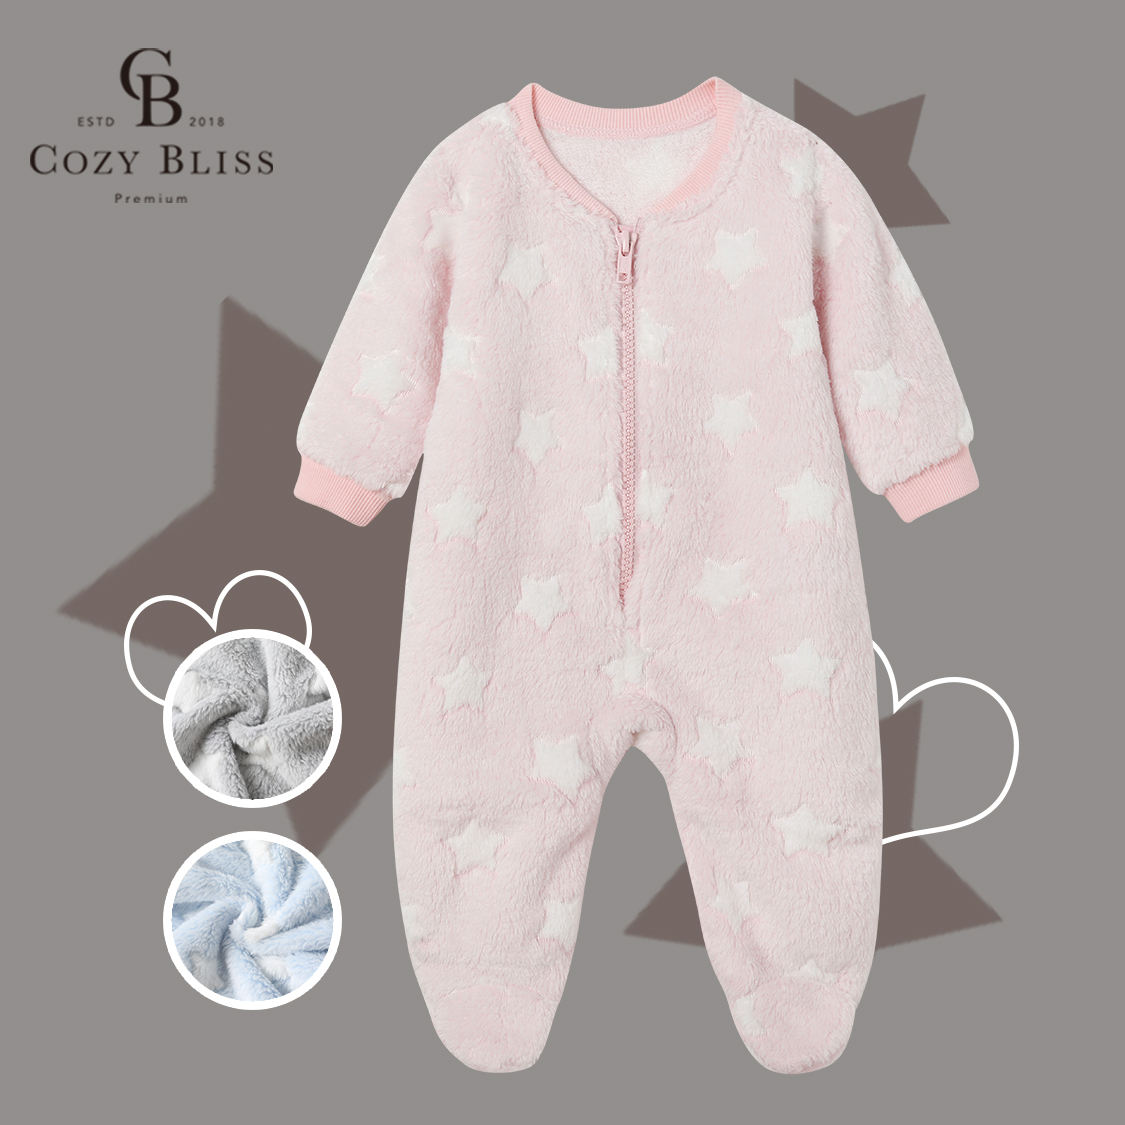 Cozy Bliss Baby Rompers footie baby Pajamas knitted infant onesie baby sleep wear